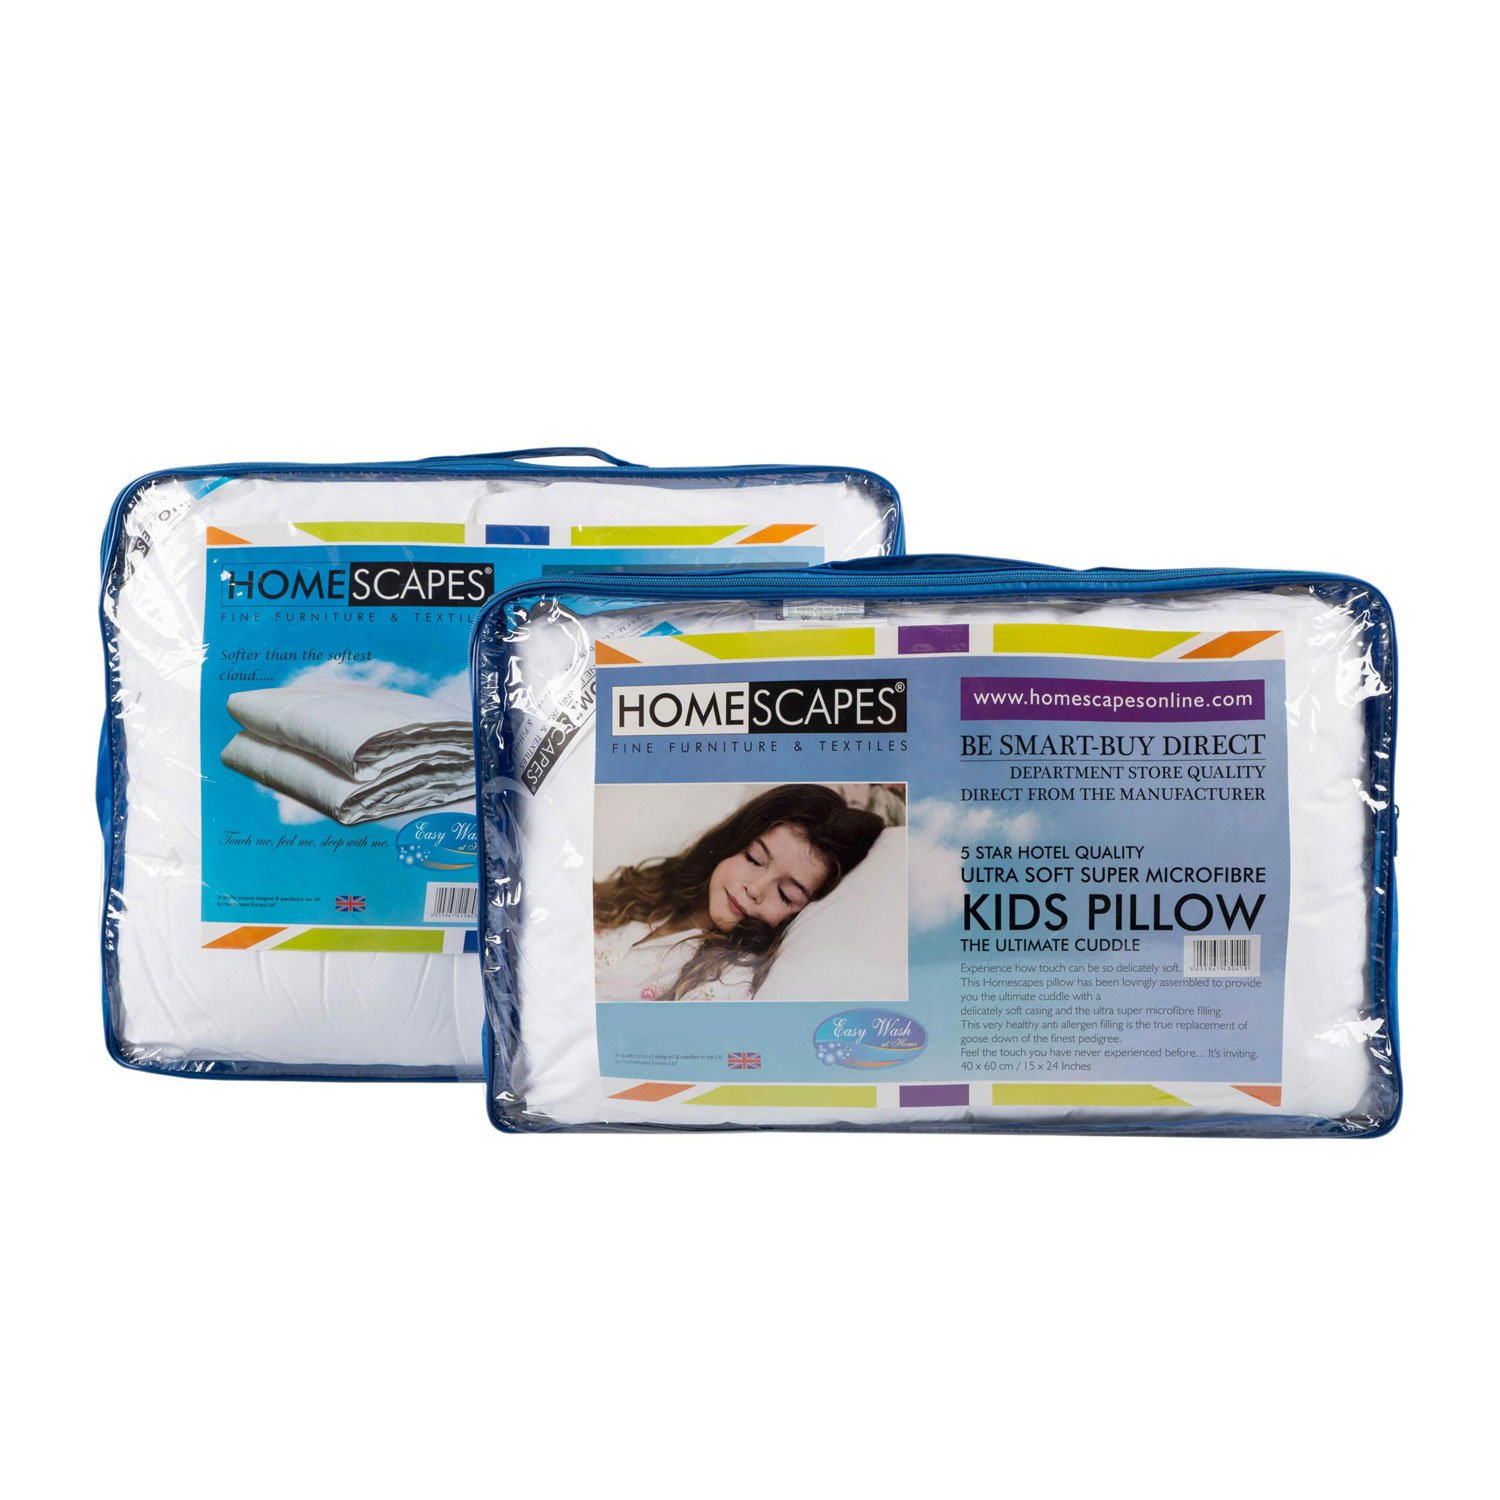 Homescapes - Kids - Duvet & Pillow Set - 10.5 Tog - Super Microfibre Filling - 120 x 150 cm , 40 x 60 cm - Extremely Soft 5 Star Hotel Quality - Anti Dust mite Anti Allergen Filling - Washable at Home - Firmness rating SOFT